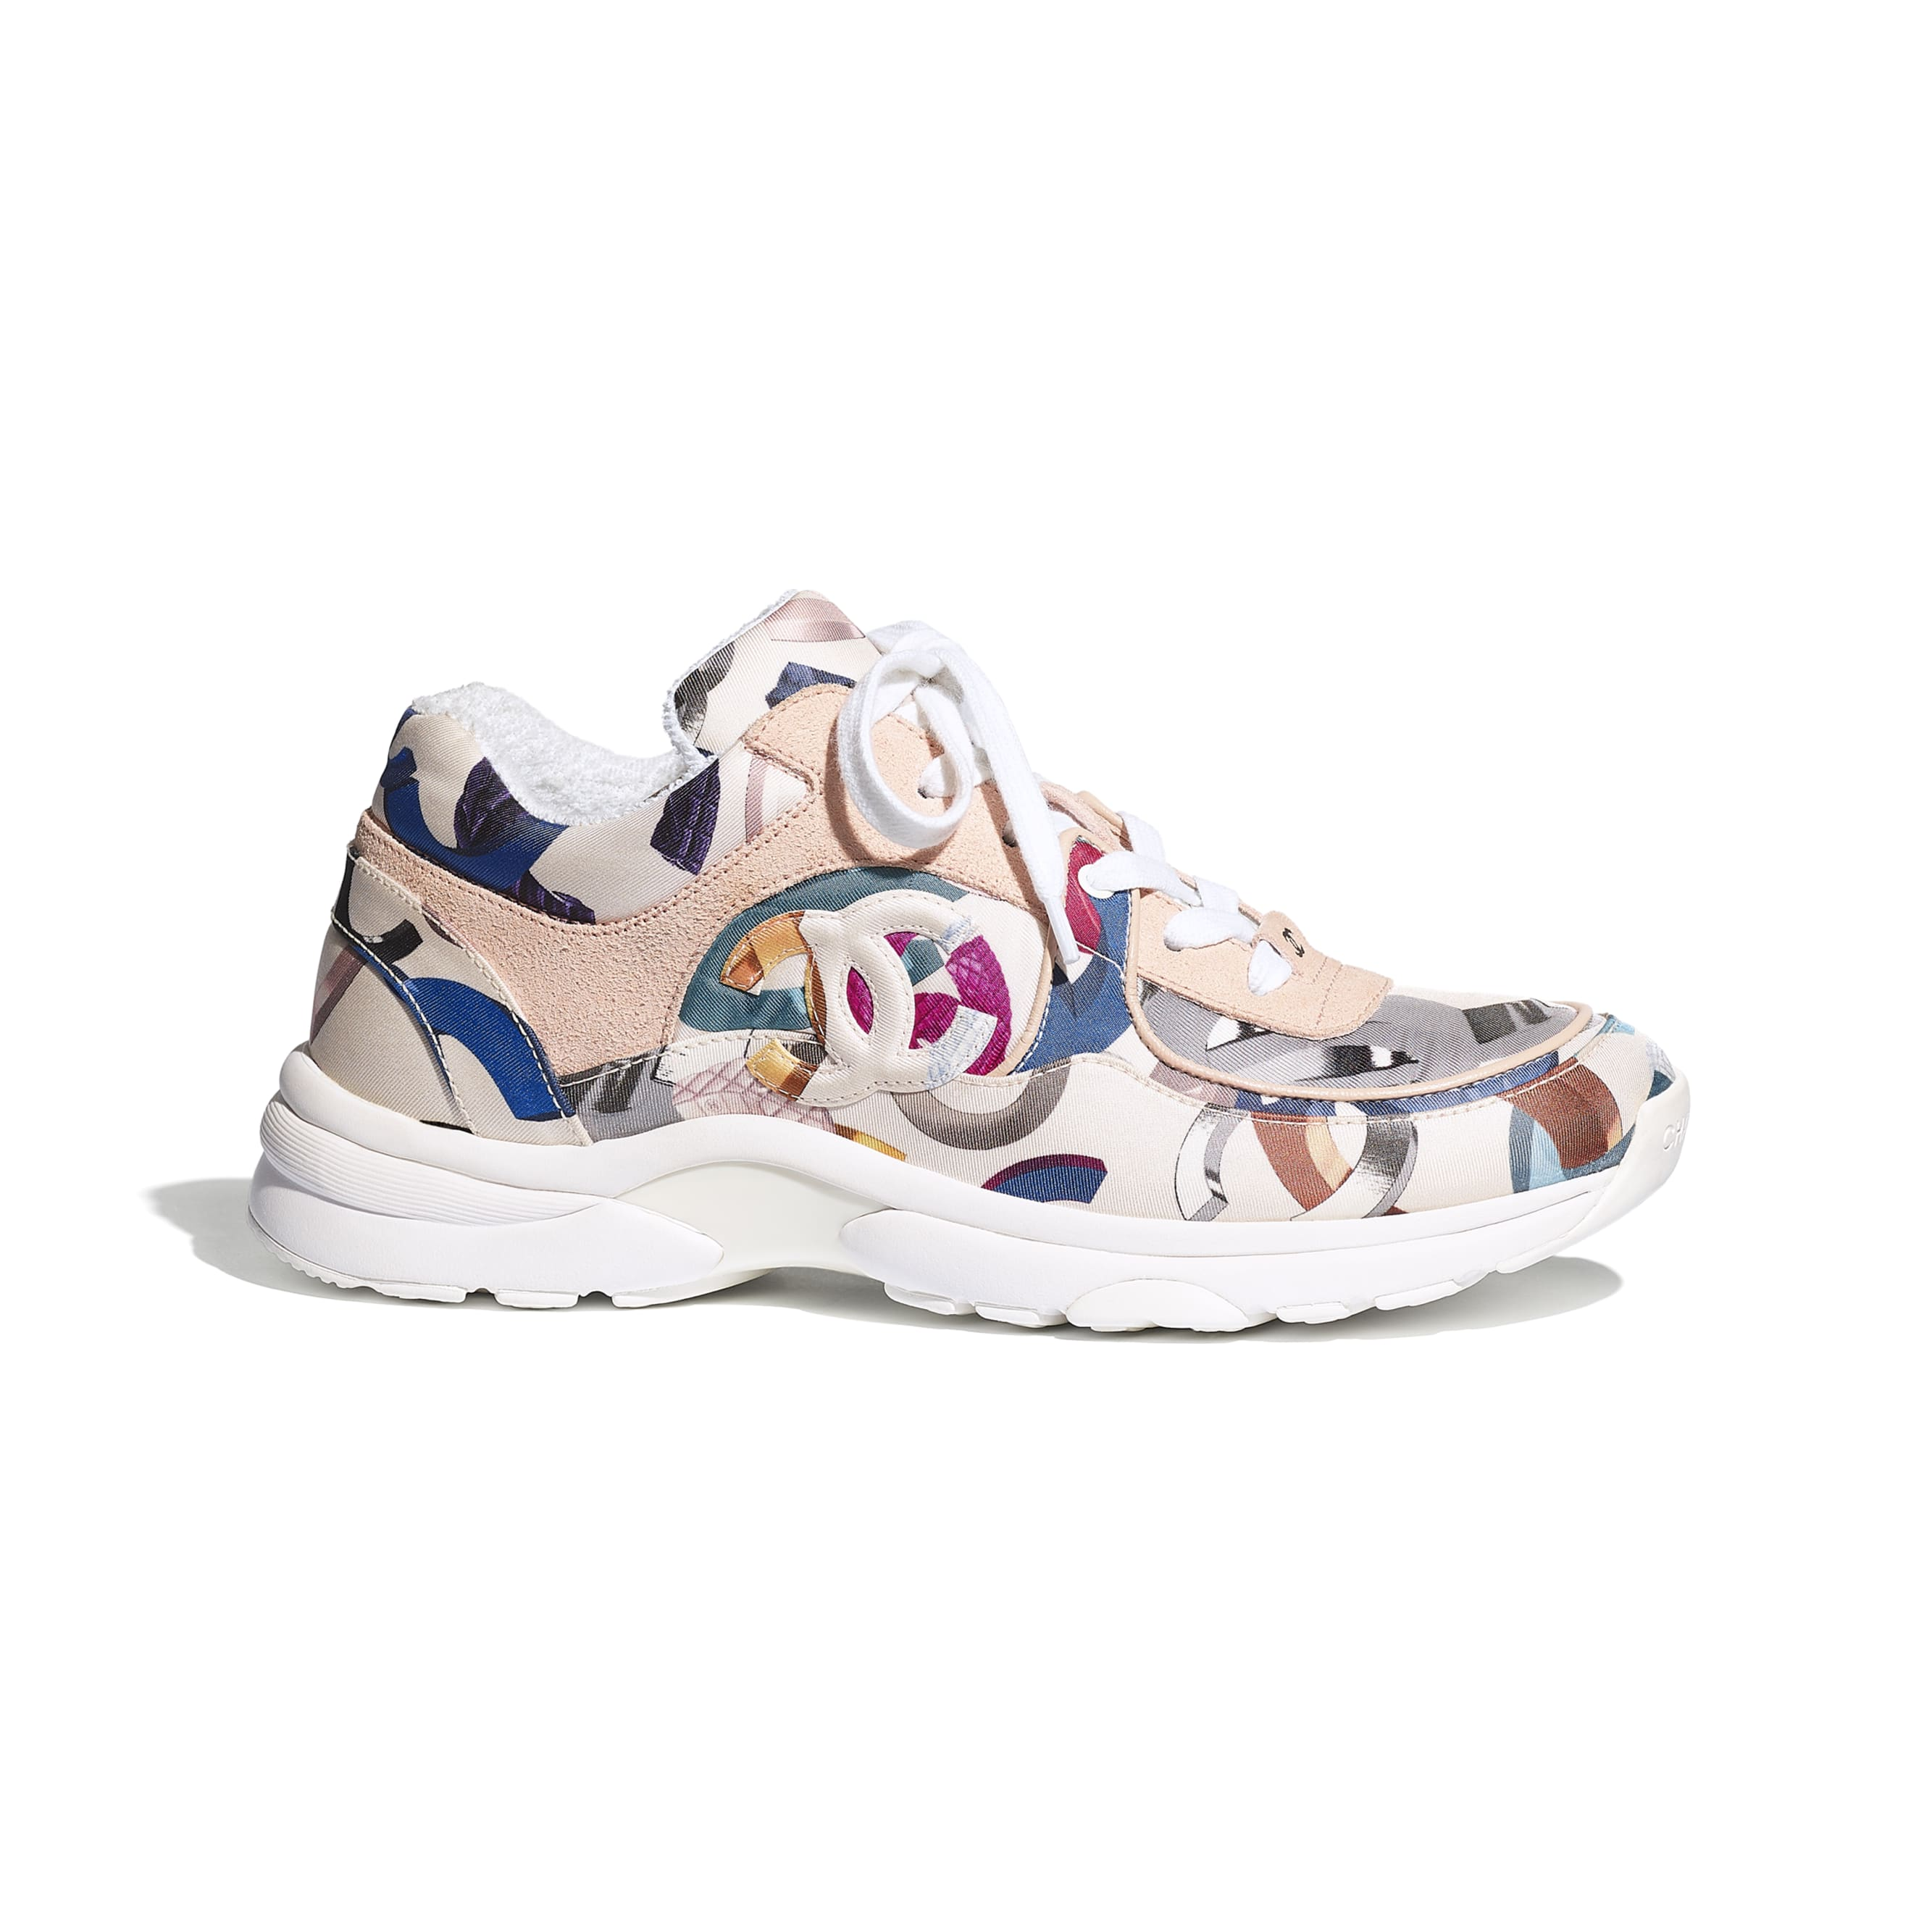 Sneakers - White & Multicolor - Printed Fabric & Suede Calfskin - CHANEL - Default view - see standard sized version